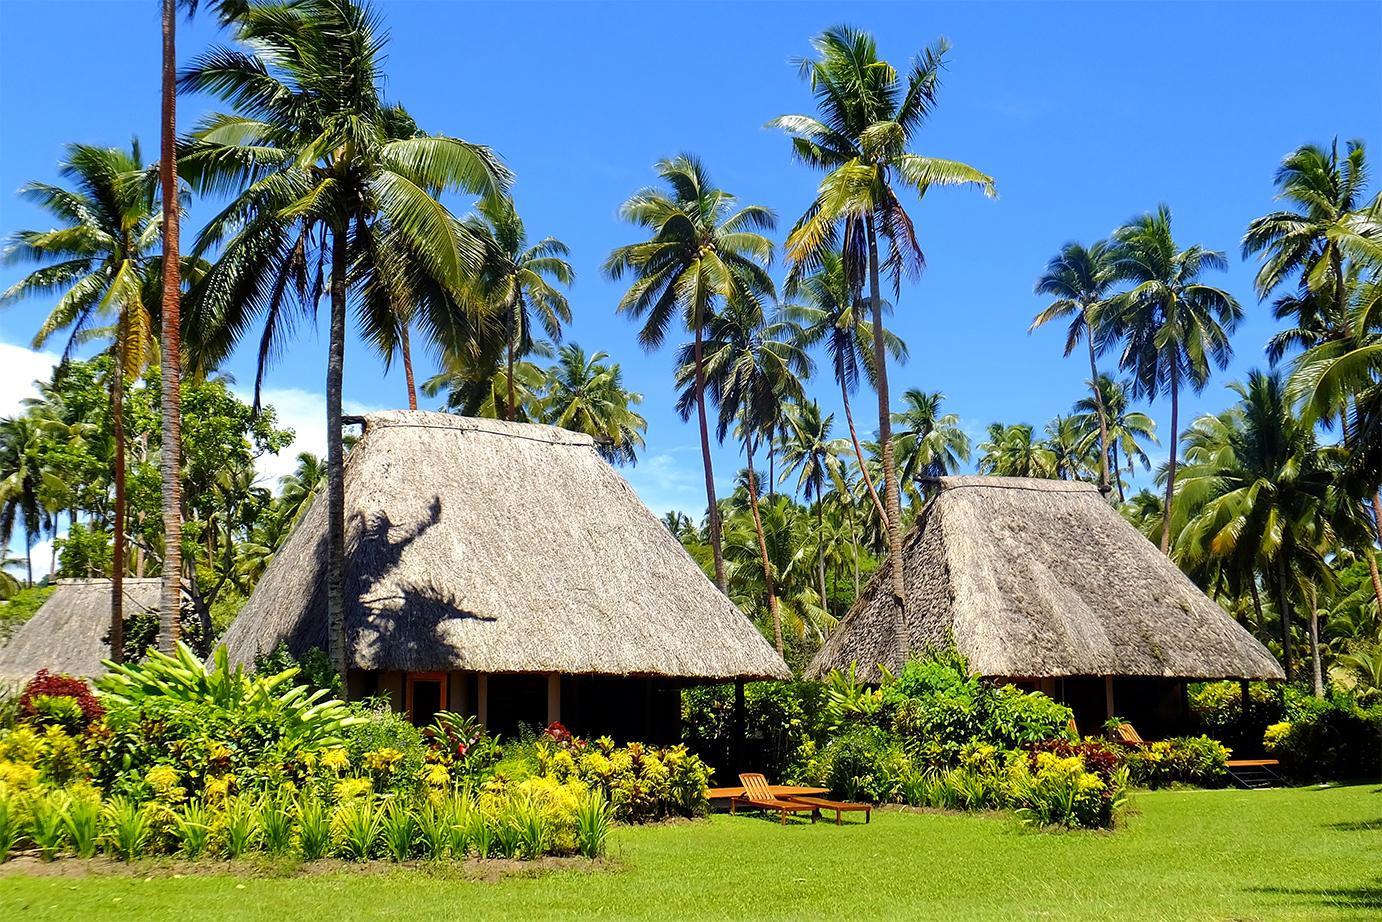 Bungalow Fiji vacation packages - Liberty Travel